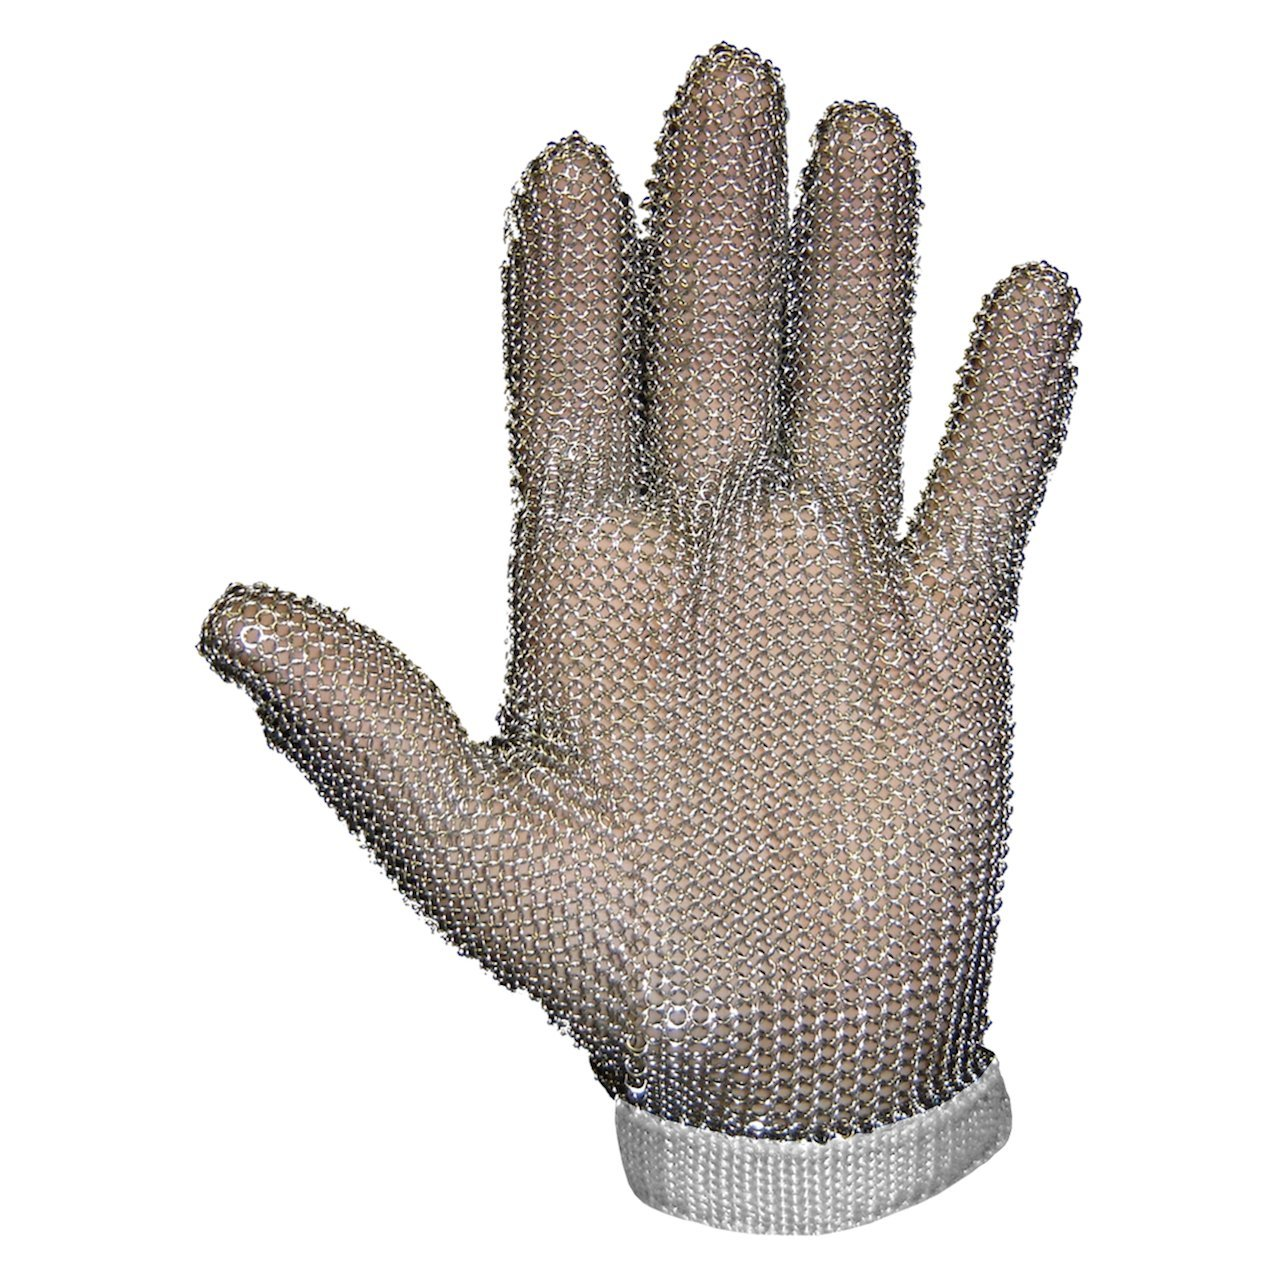 DayMark IT114160 Cut Resistant Stainless Steel Metal Mesh Glove, Small